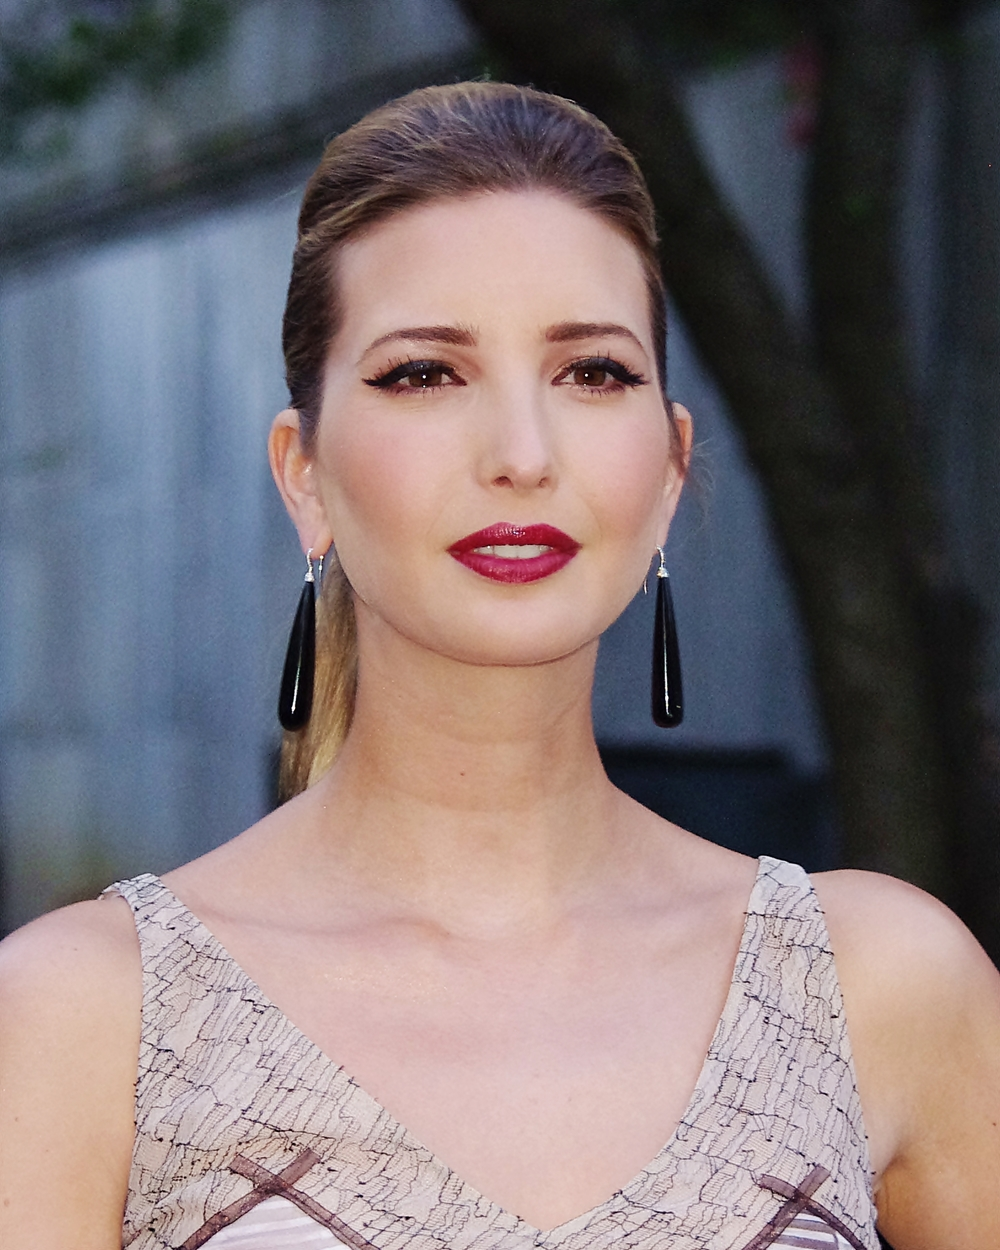 Ivanka Trump, the daughter of U.S. Republican presidential nominee Donald Trump, converted to Judaism under the guidance of Rabbi Haskel Lookstein. Credit: Wikimedia Commons.